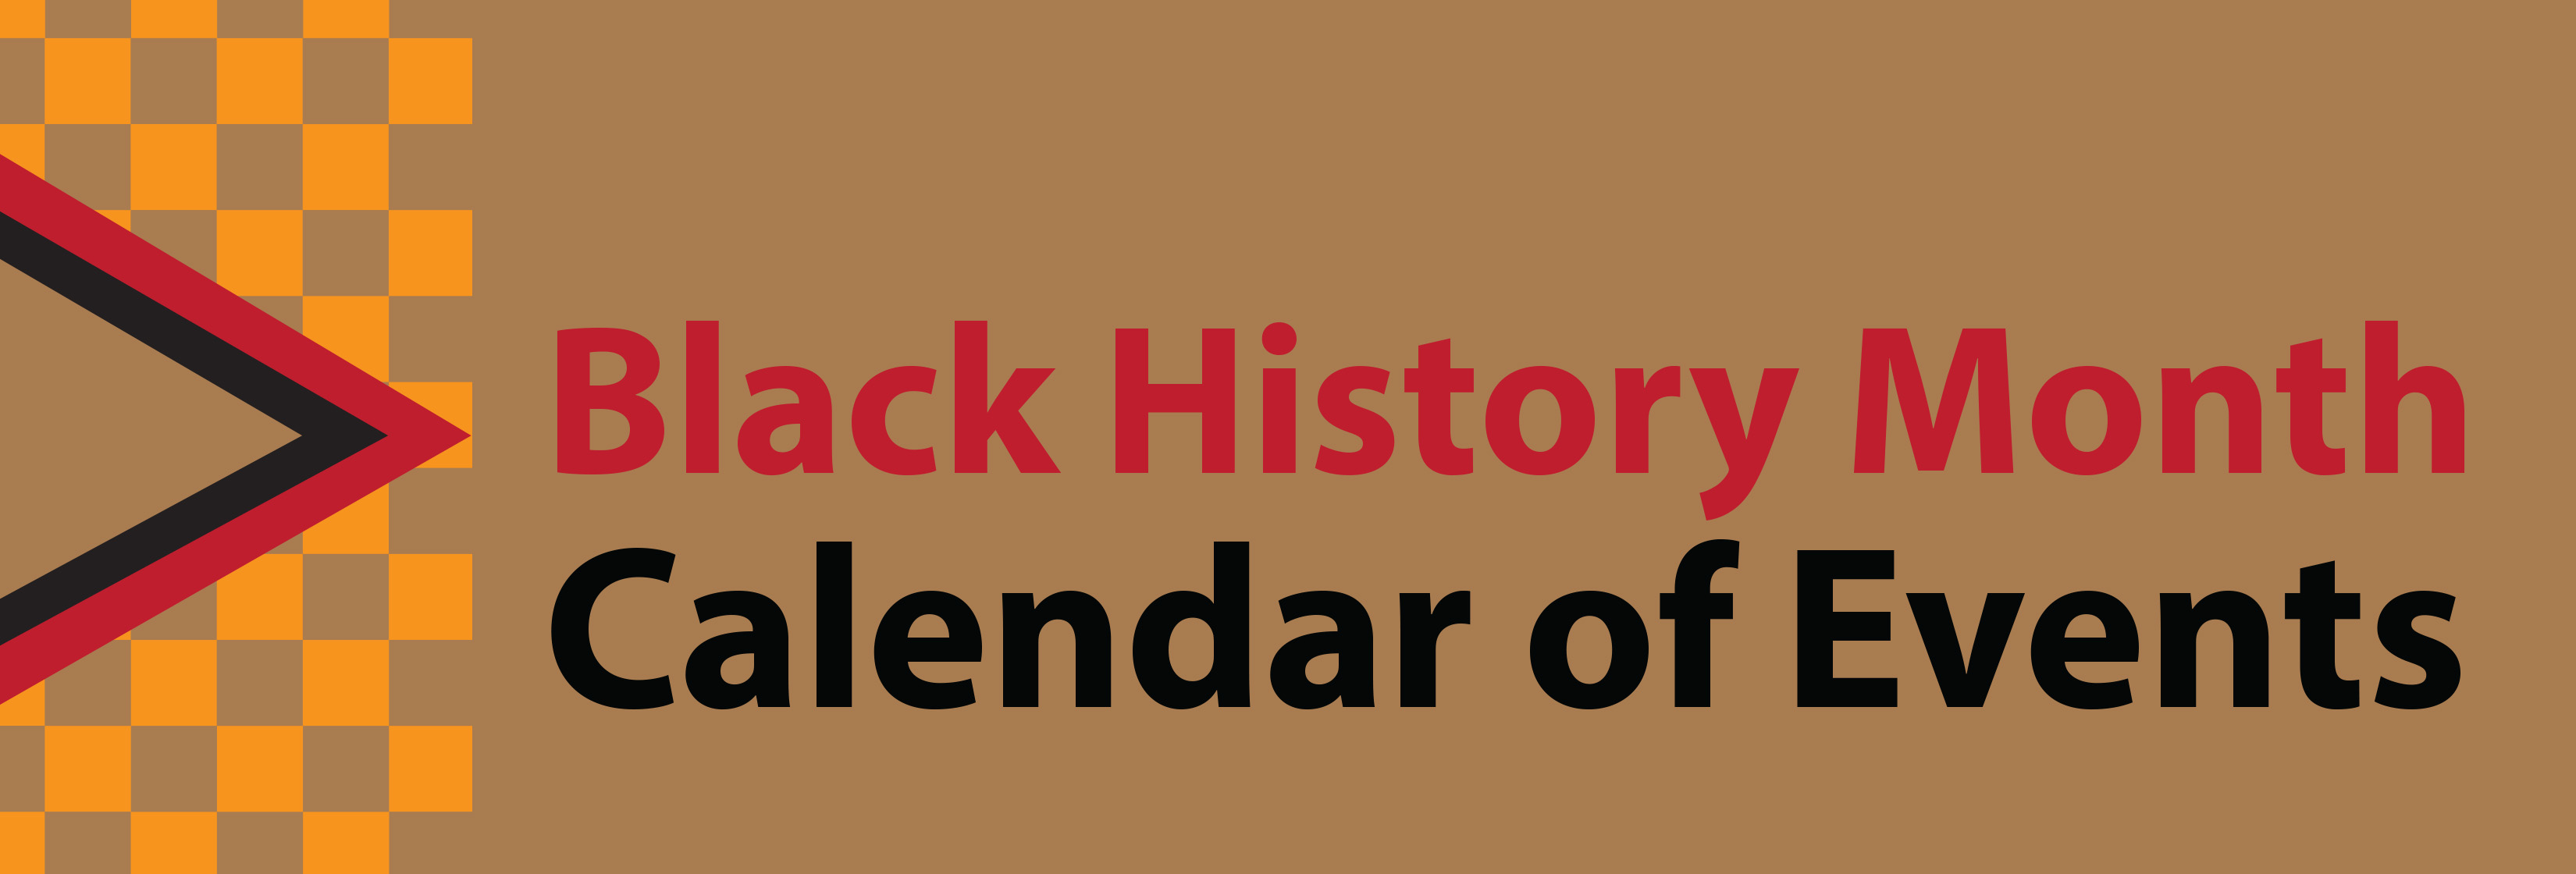 "A text slide that reads ""Black History Month Calendar of Events."""